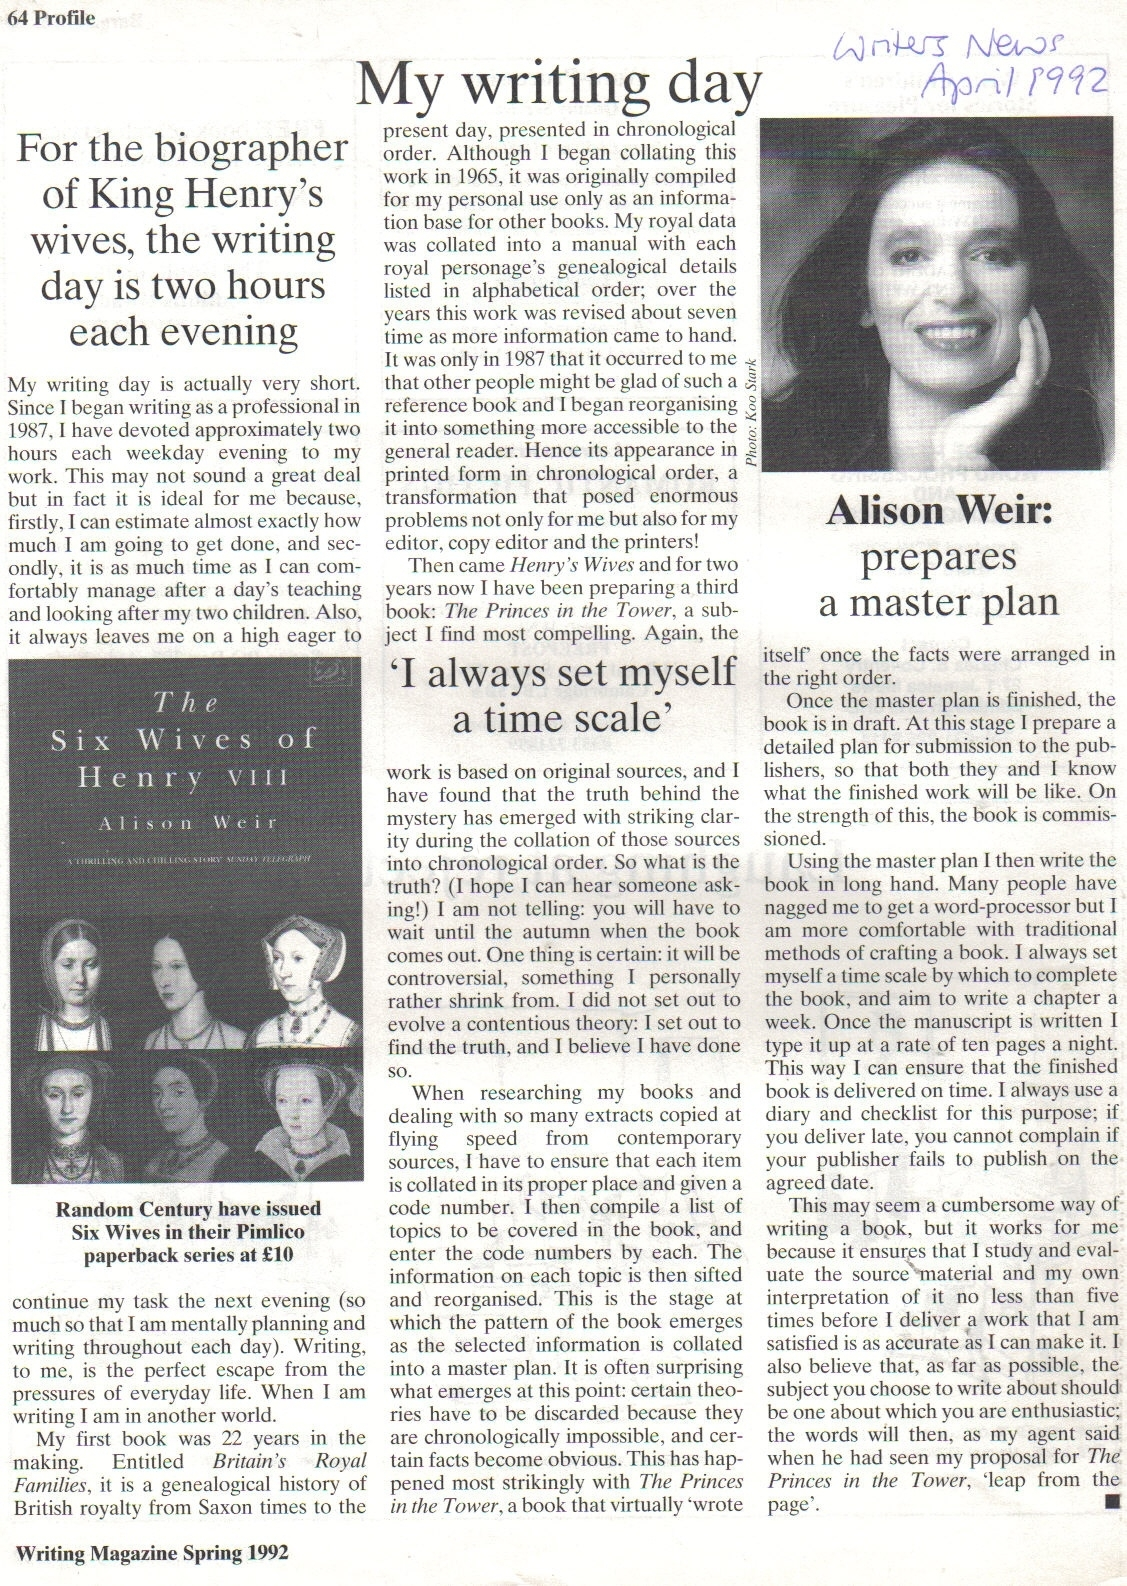 My Writing Day By Alison Weir Writing Magazine, Spring 1992